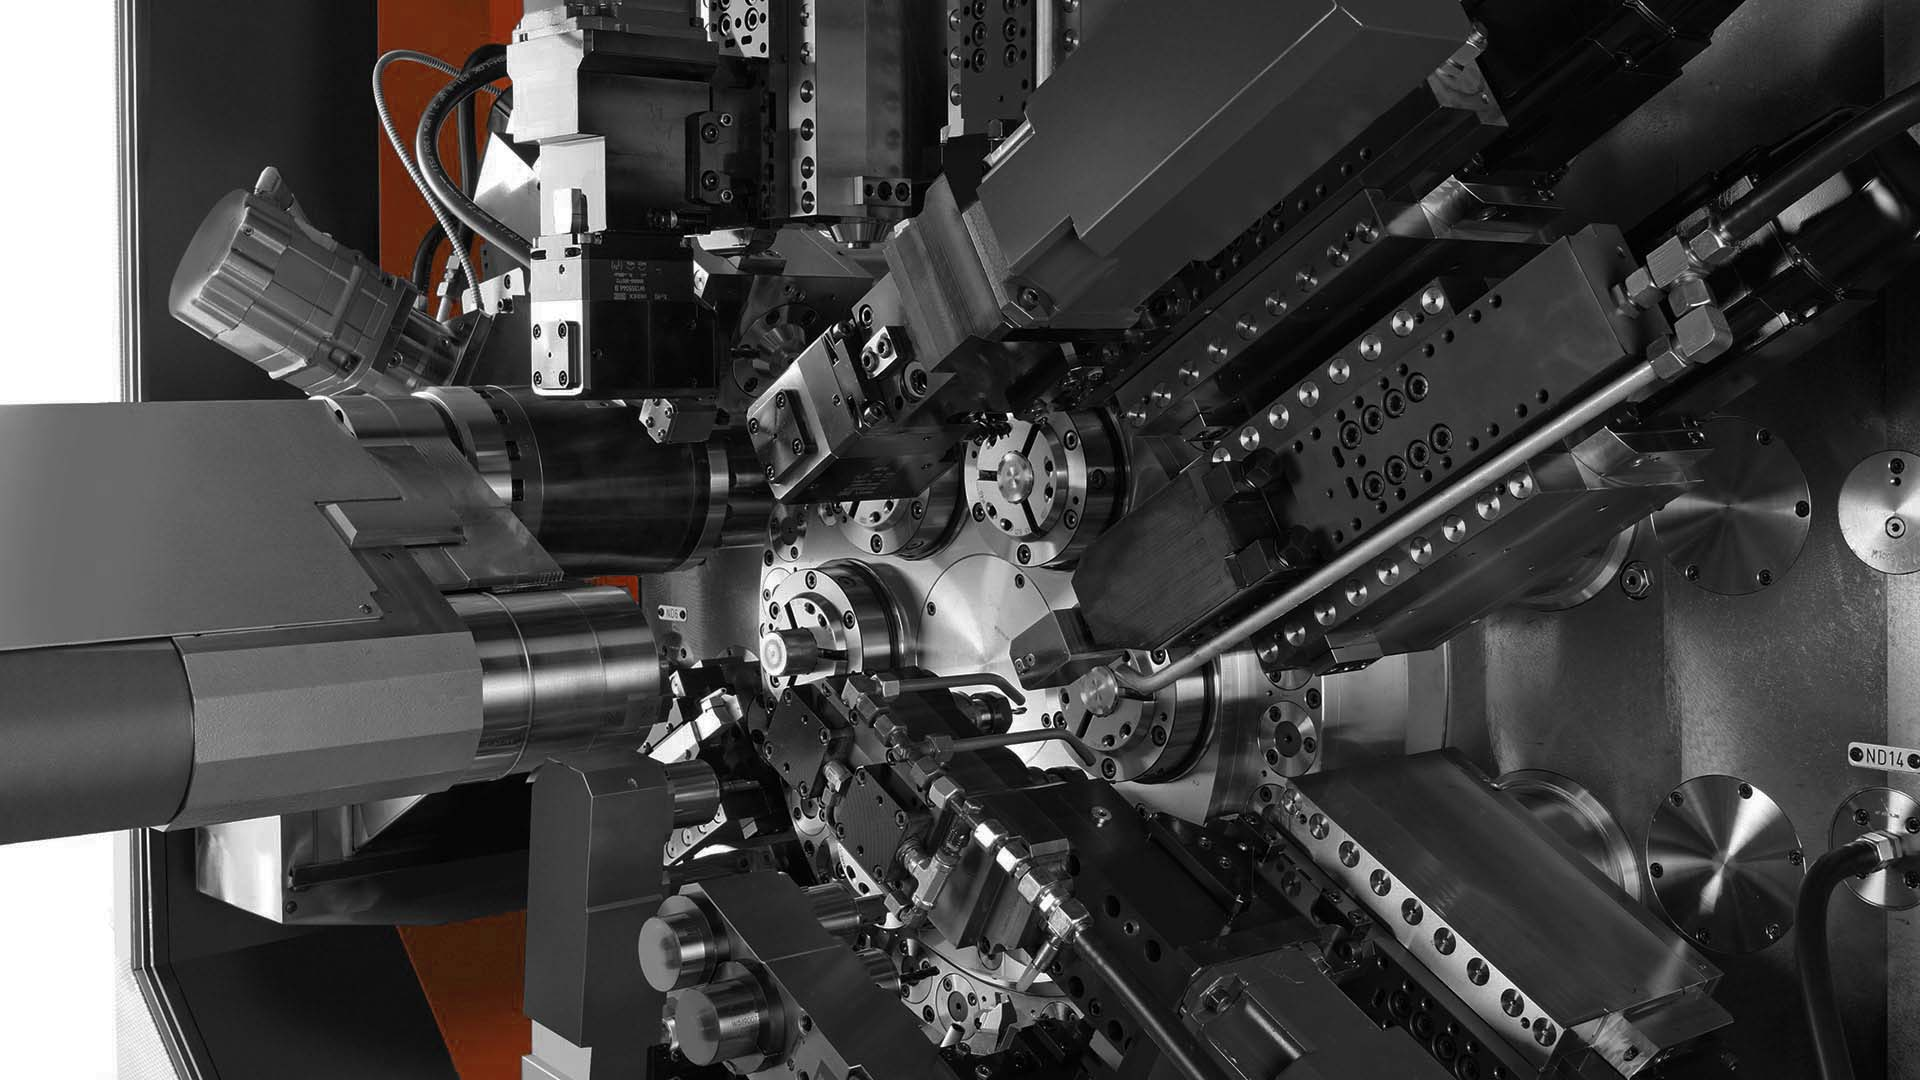 Equipment Finance Group offers financing to machine shops of all sizes